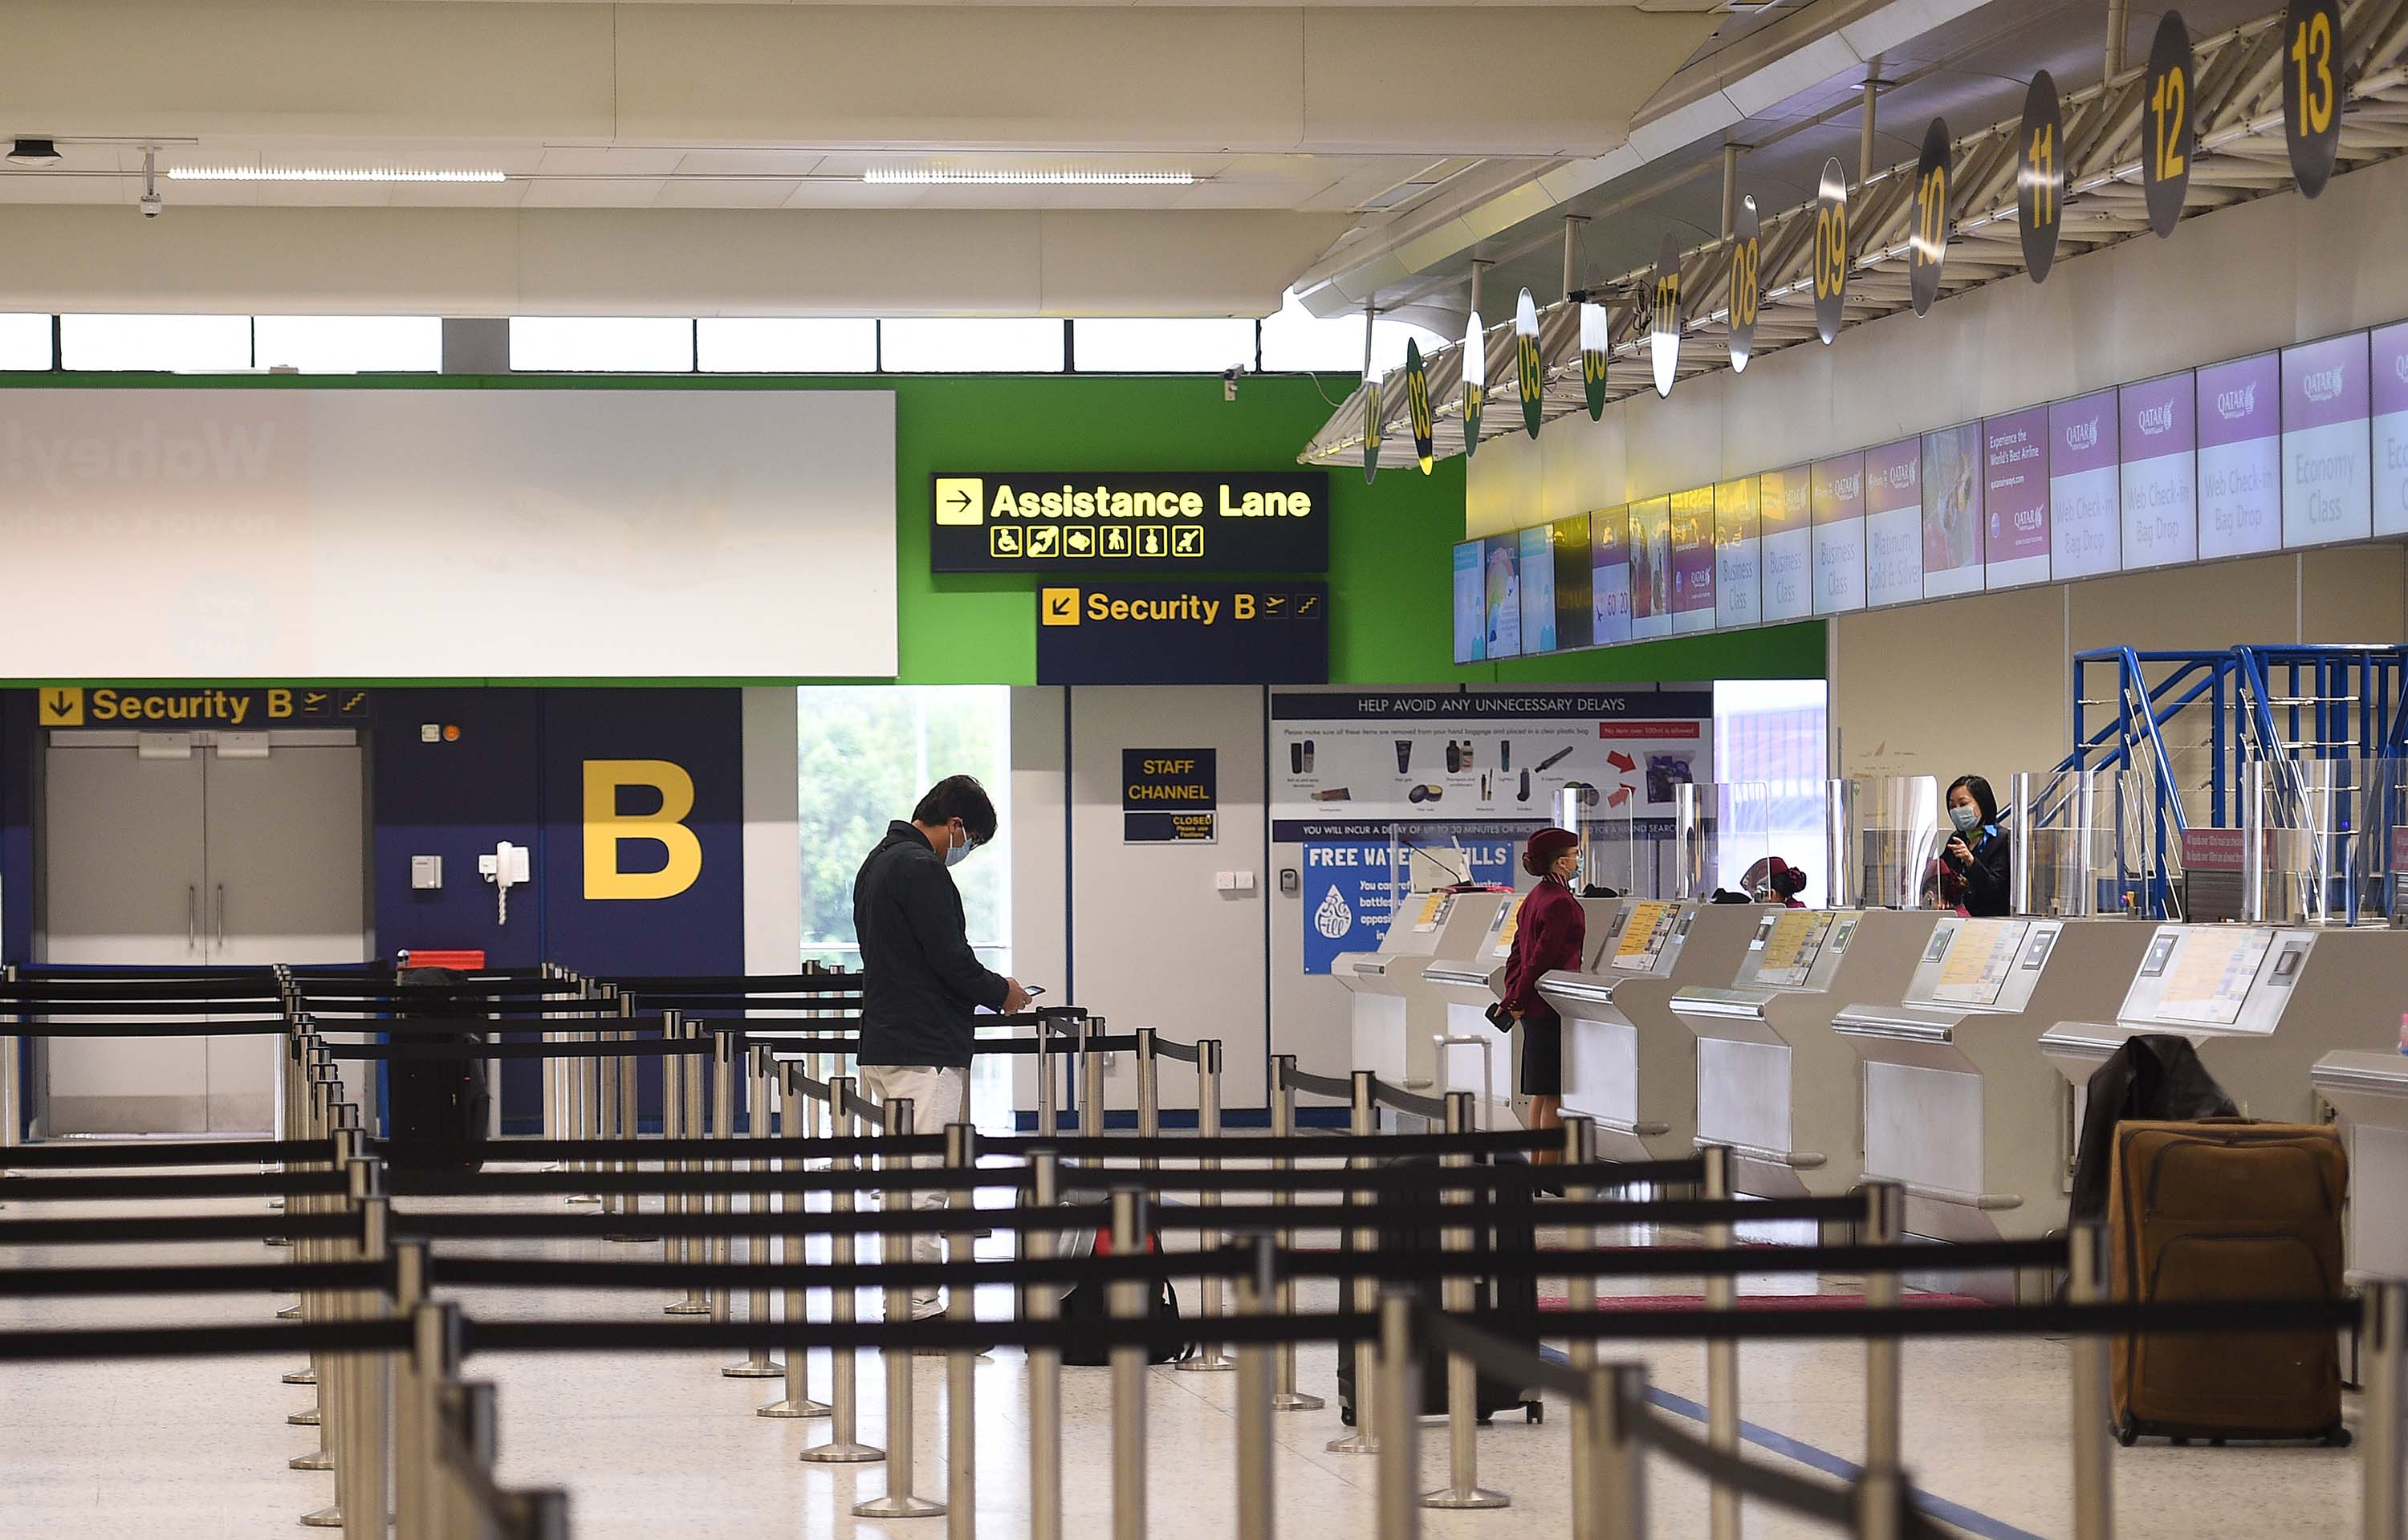 Passengers wearing PPE wait at a nearly deserted check-in desk in the Manchester Airport departure hall, in northern England, on May 11.